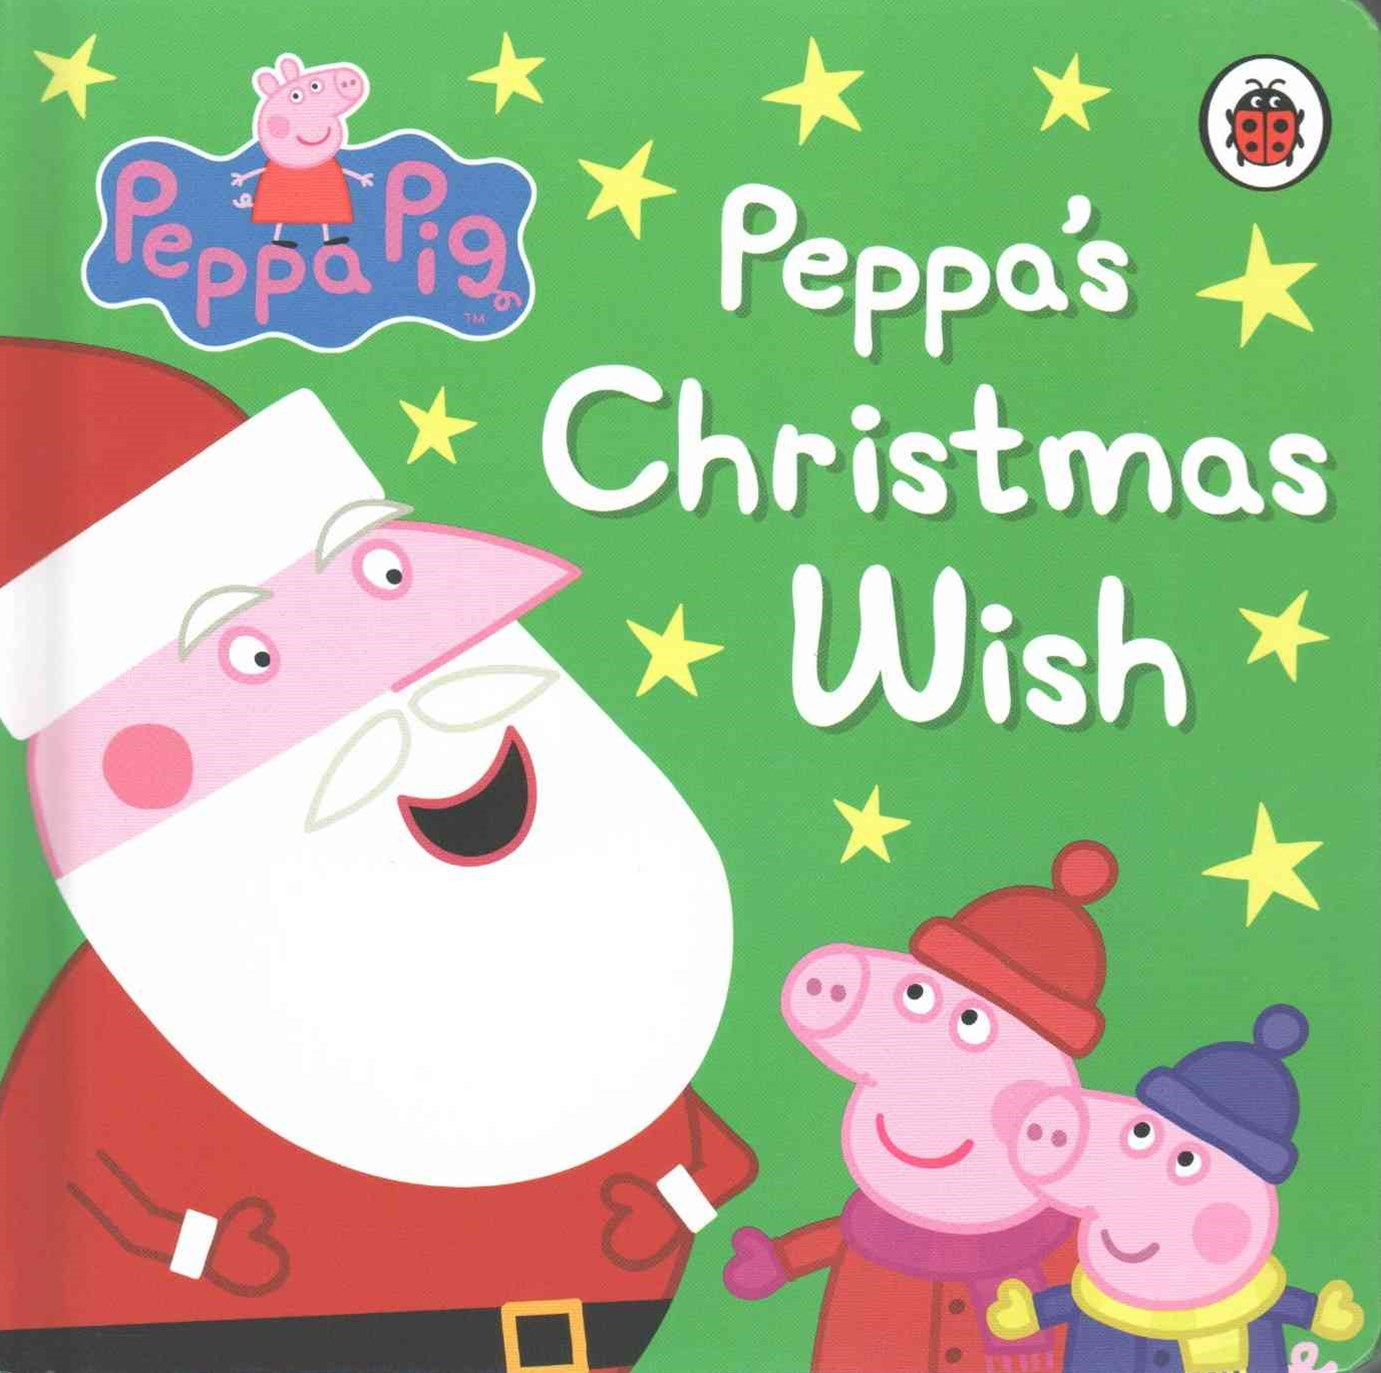 Peppa Pig: Peppa's Christmas Wish